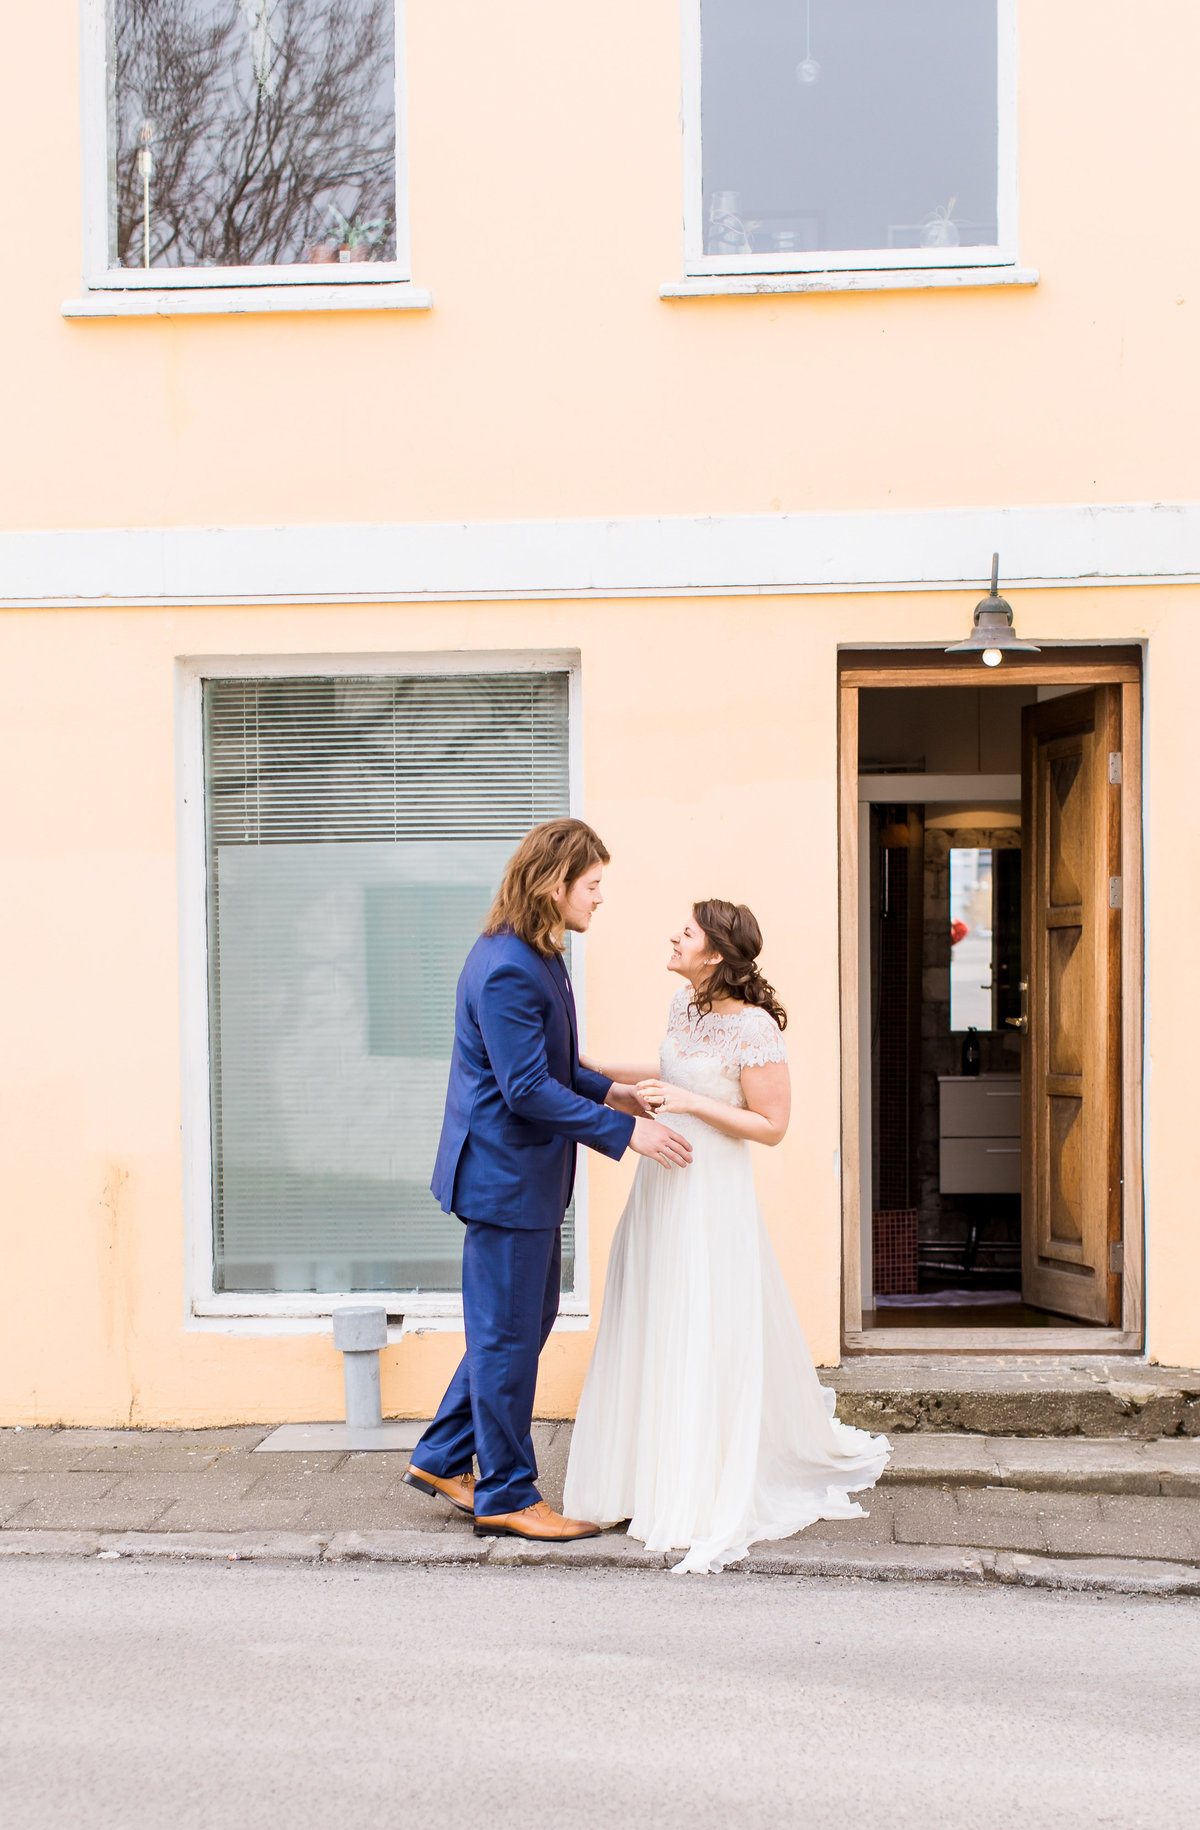 IcelandWedding_OliviaScott_DestinationWedding_CatherineRhodesPhotography-135-Edit